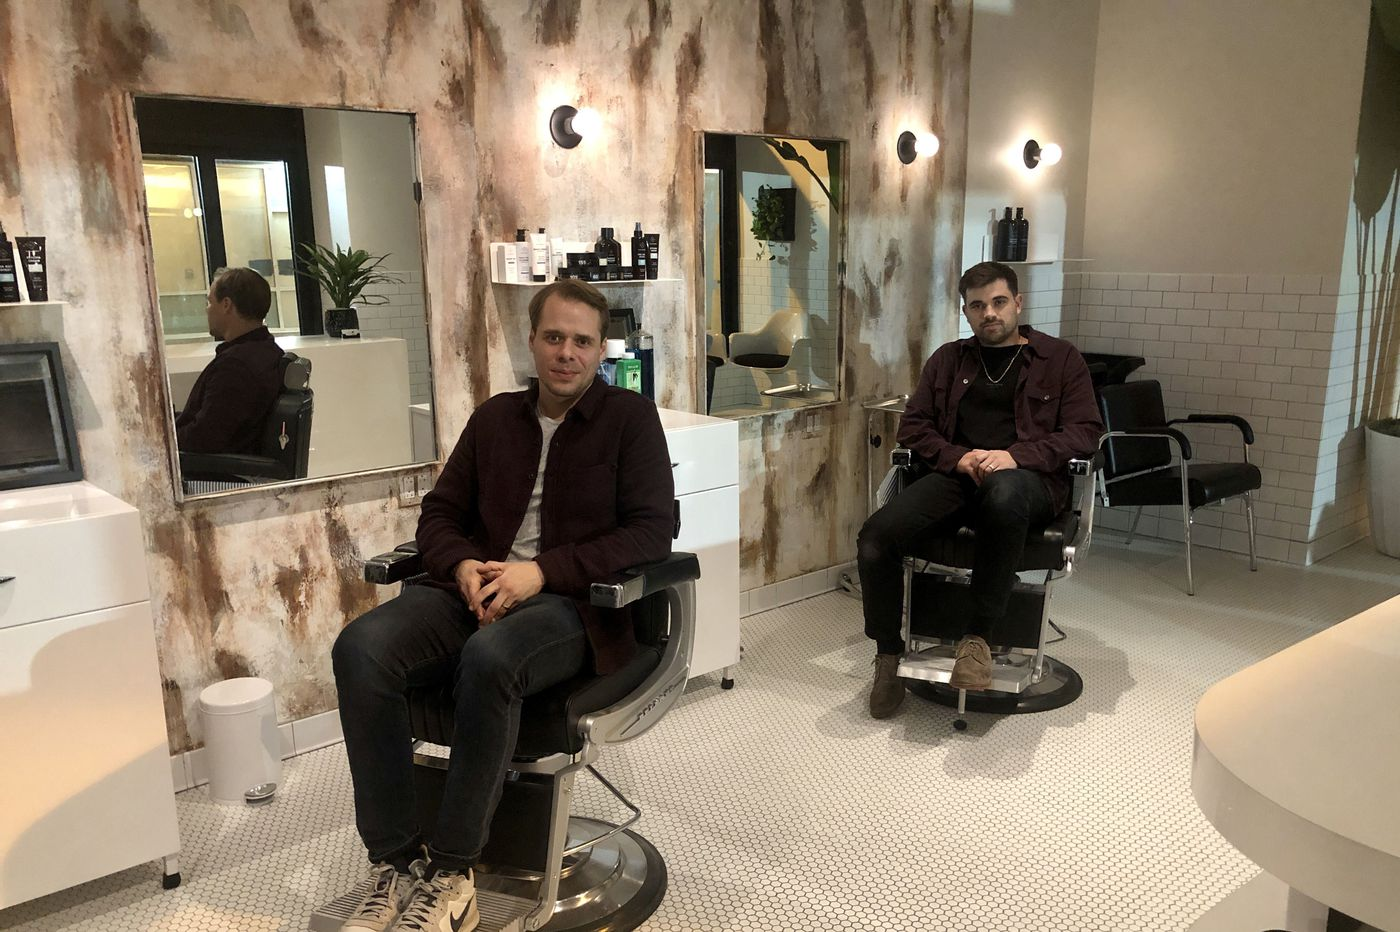 Hair it is: Bryce Harper's barbershop-bar, Blind Barber, opens in Center City